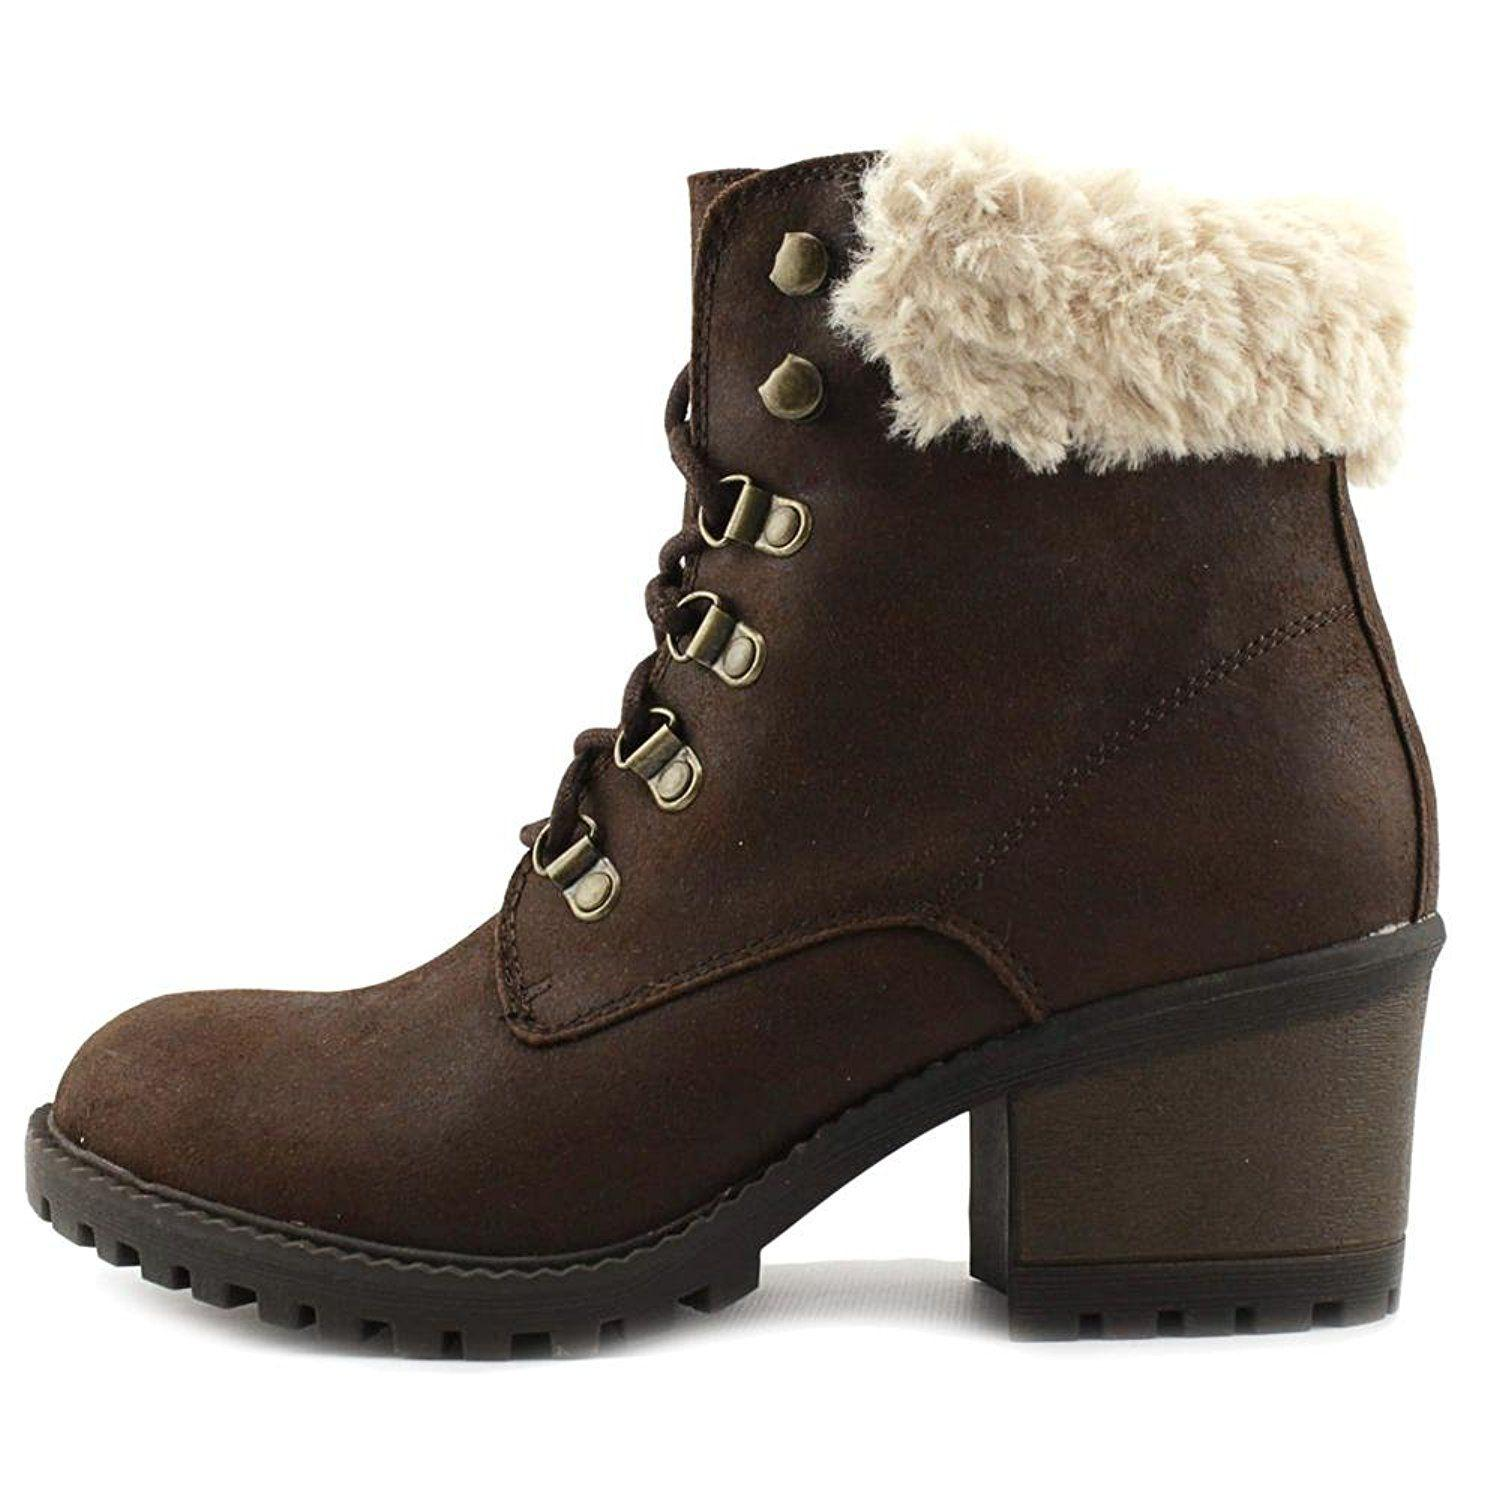 7655d17506ee White Mountain Footwear - Brown Womens Trident Fabric Round Toe Ankle  Fashion Boots - Lyst. View fullscreen